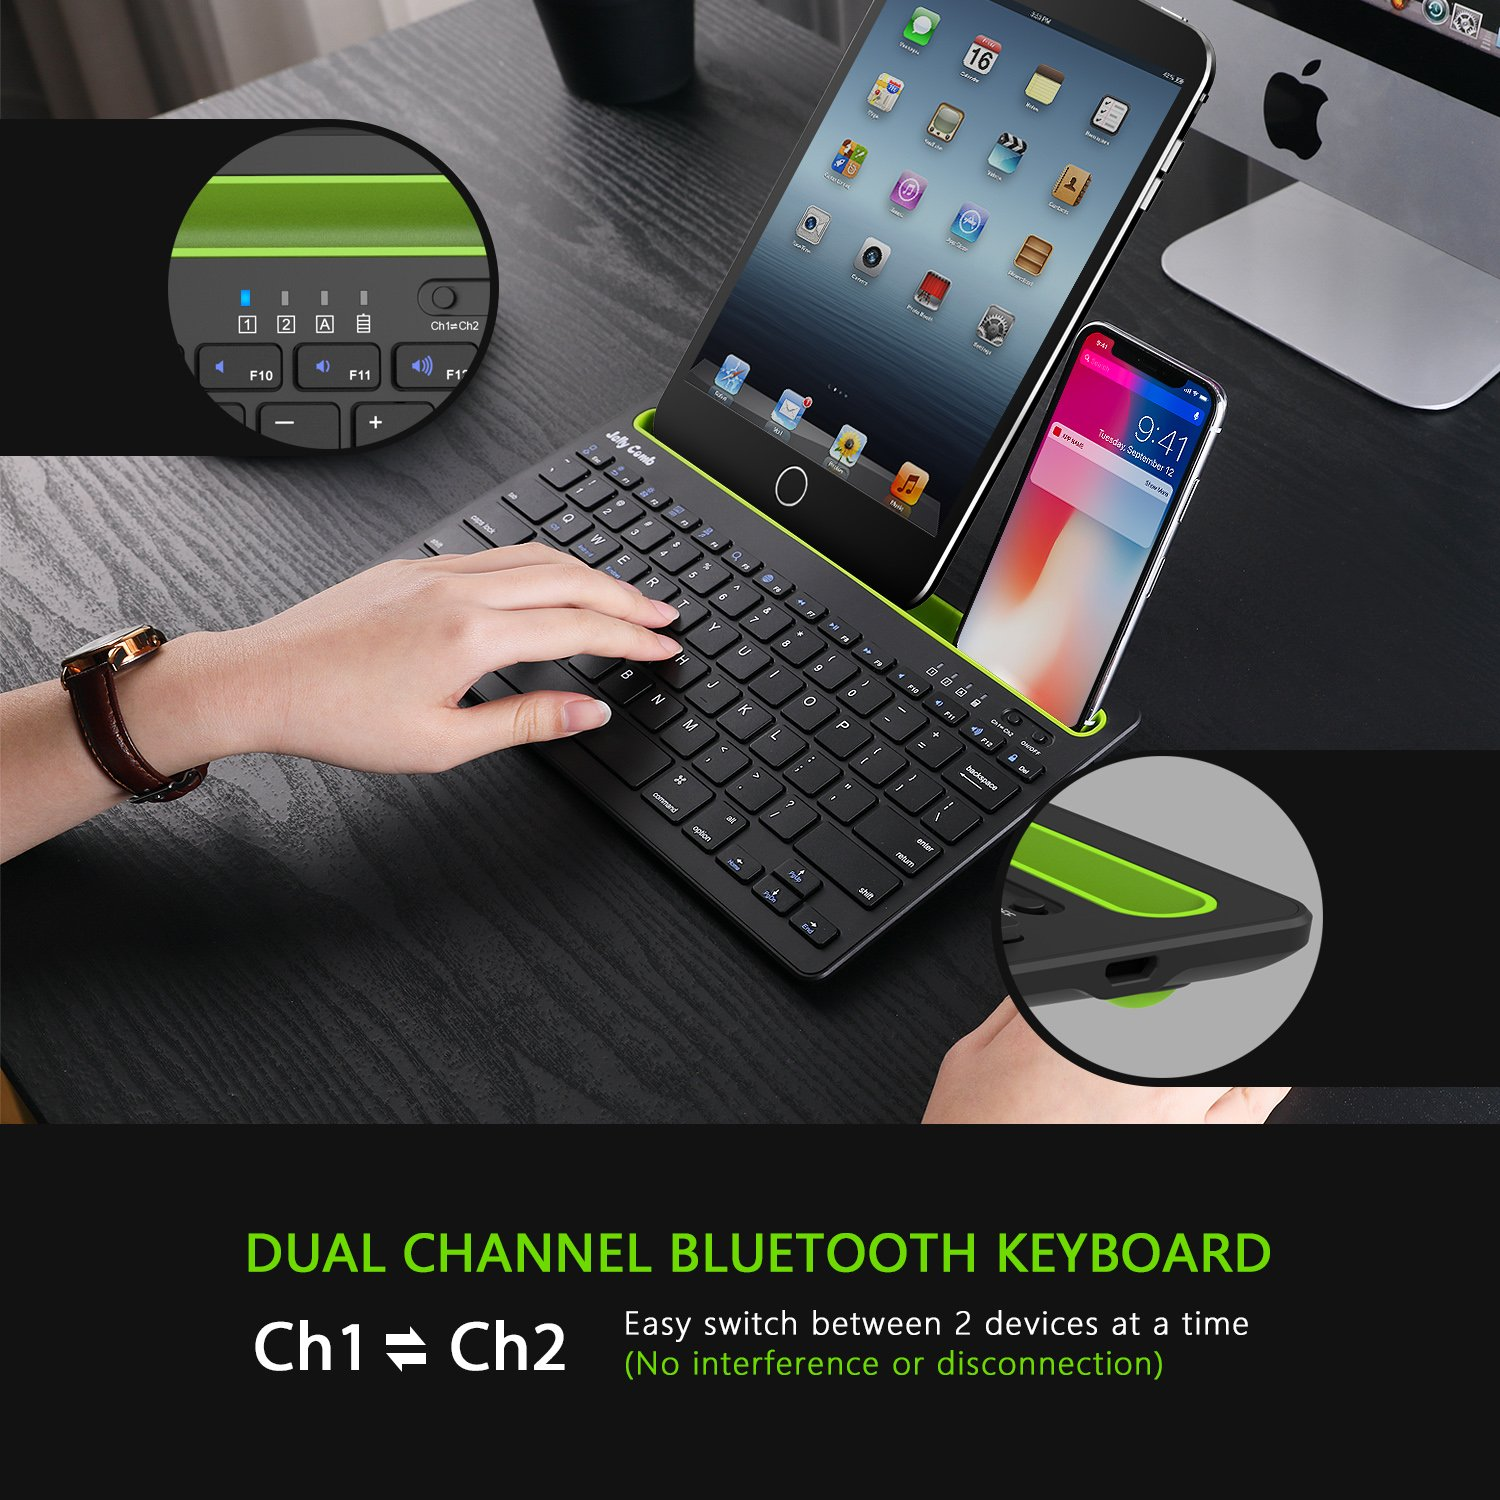 Bluetooth keyboard, Jelly Comb BK230 Dual Channel Multi-device Universal Wireless Bluetooth Keyboard Rechargeable with Sturdy Stand for Tablet Smartphone PC Windows Android iOS Mac (Black and Green) by Jelly Comb (Image #3)